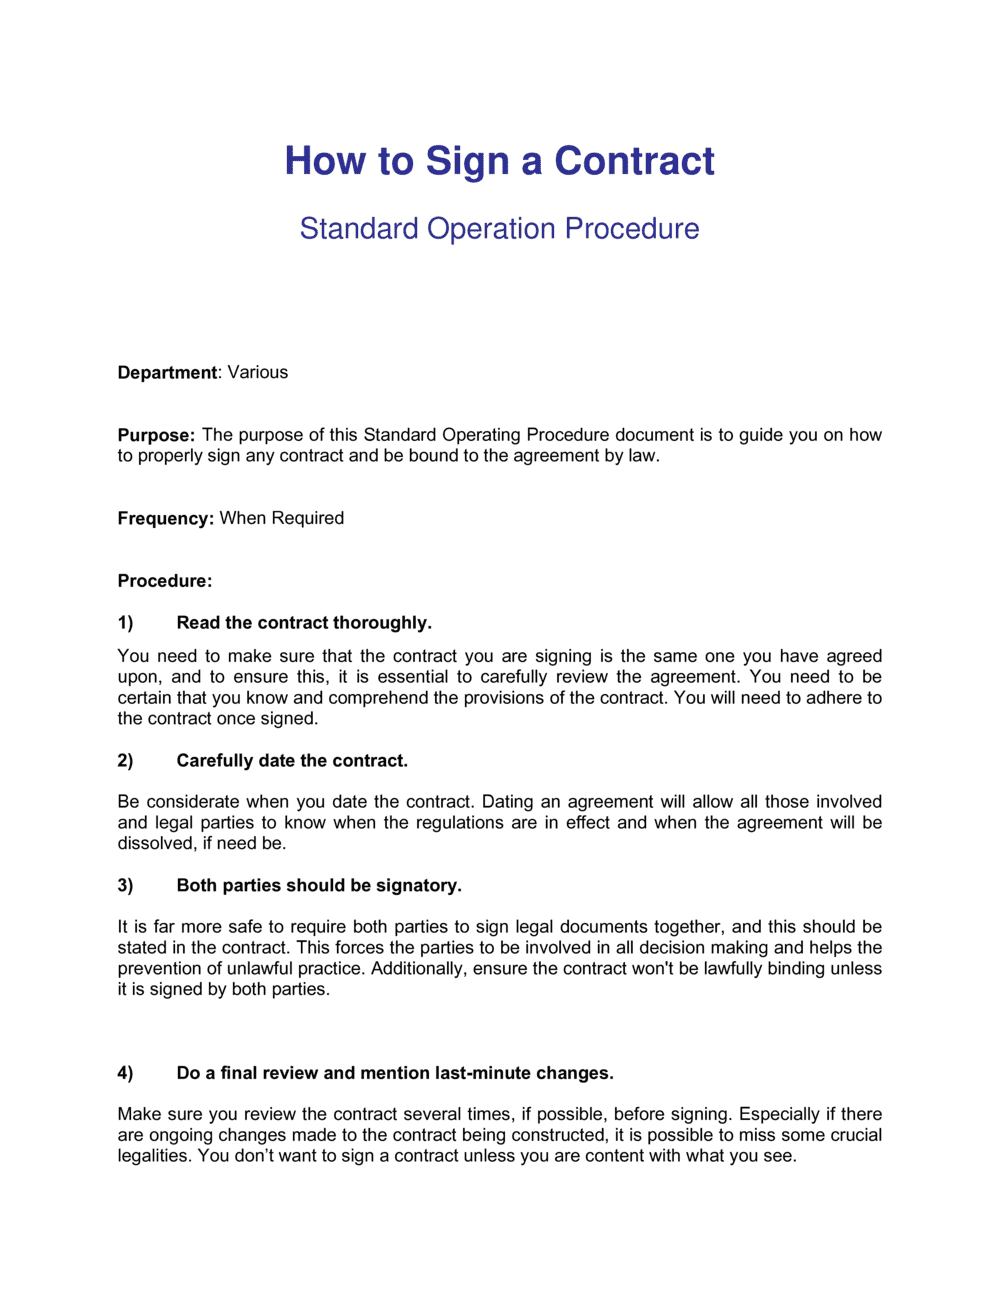 Business-in-a-Box's How To Sign A Contract Template